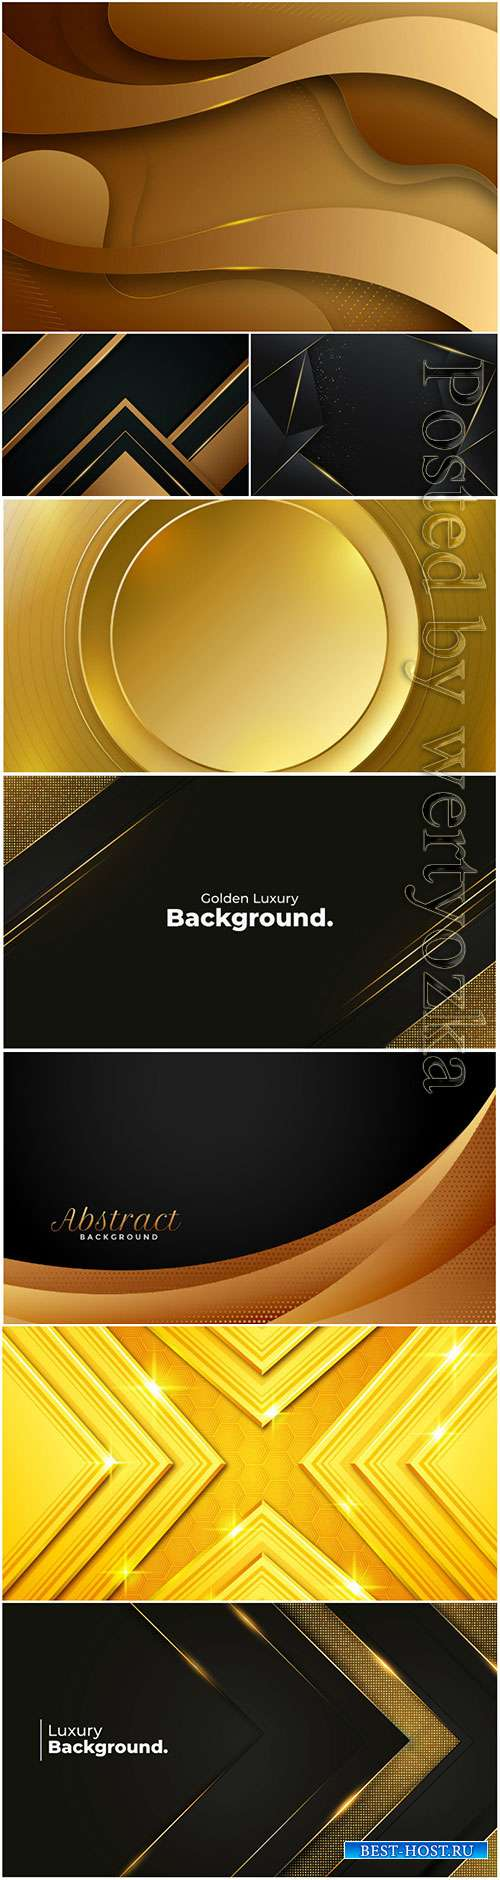 Vector backgrounds with gold decor